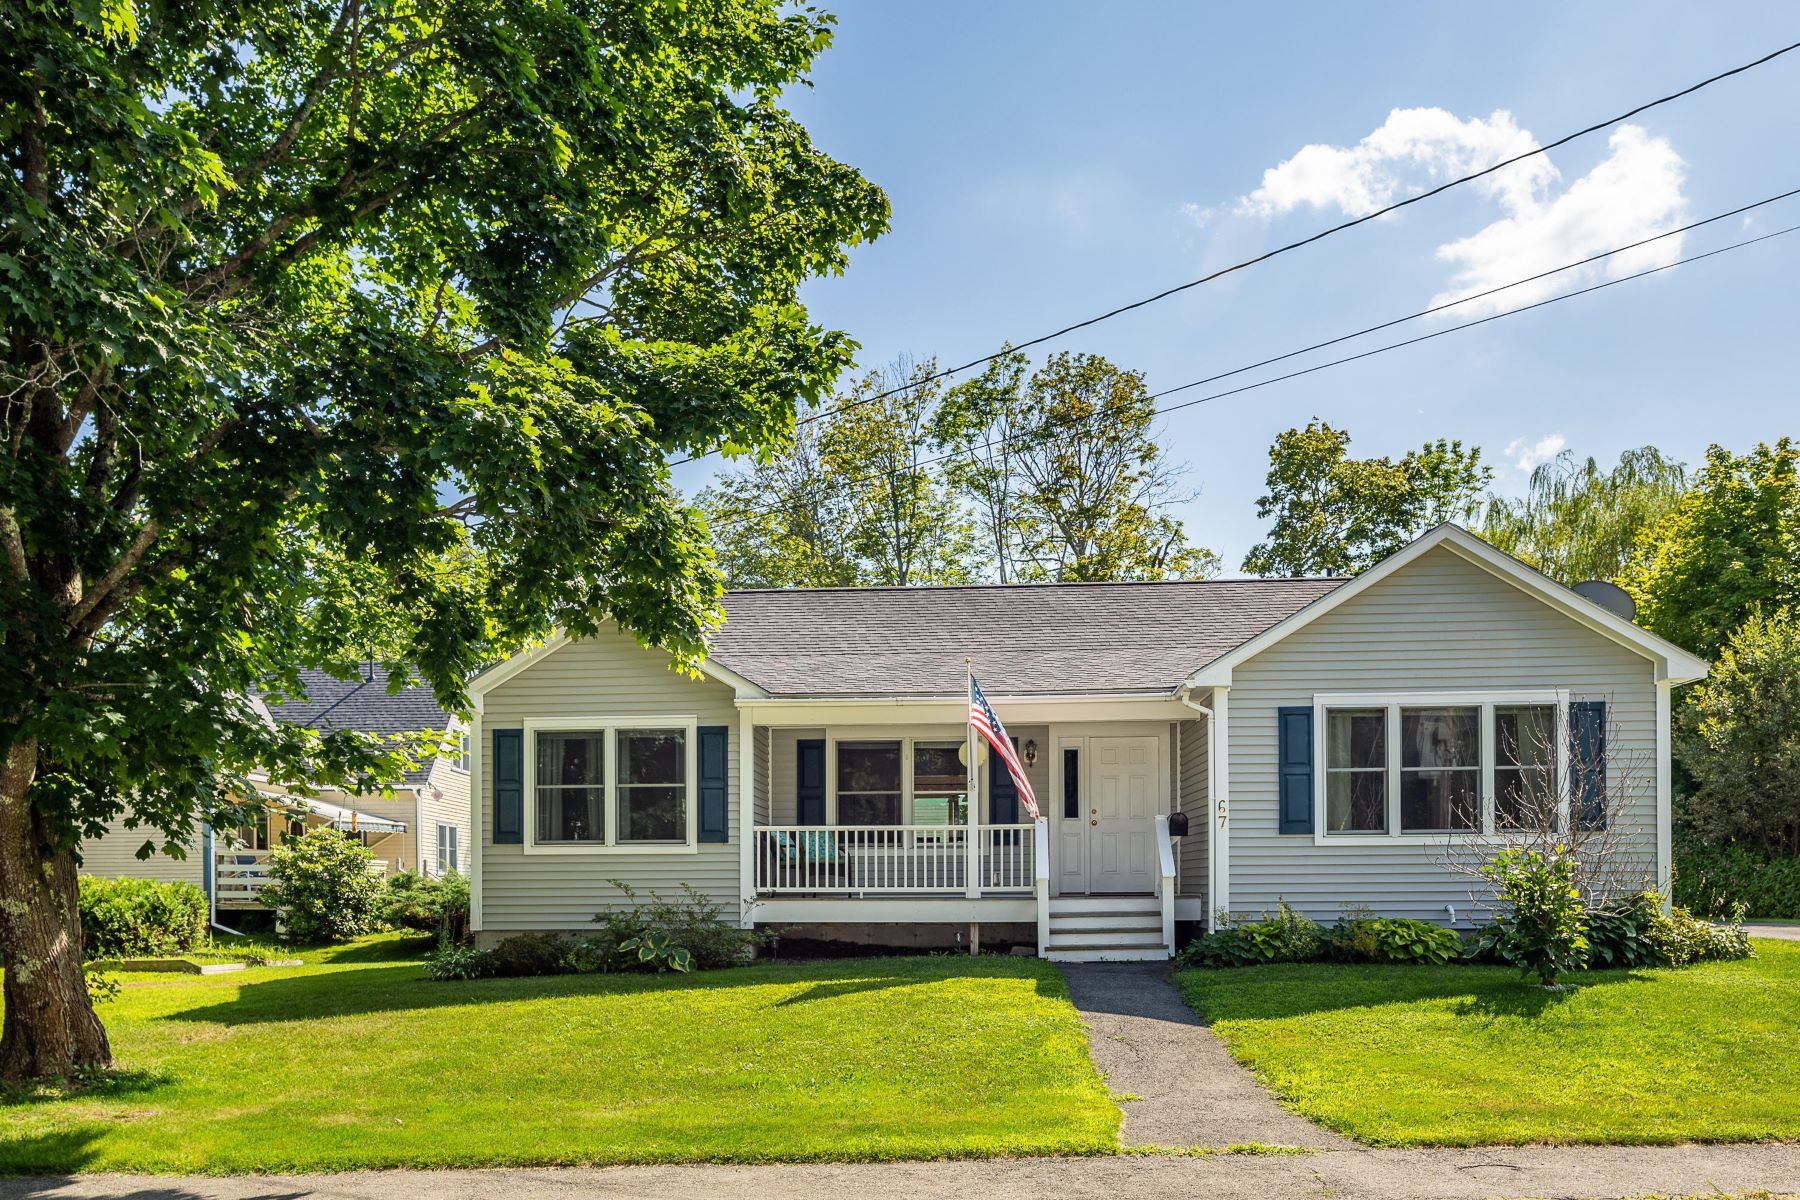 Single Family Homes for Active at 67 Park Street Camden, Maine 04843 United States